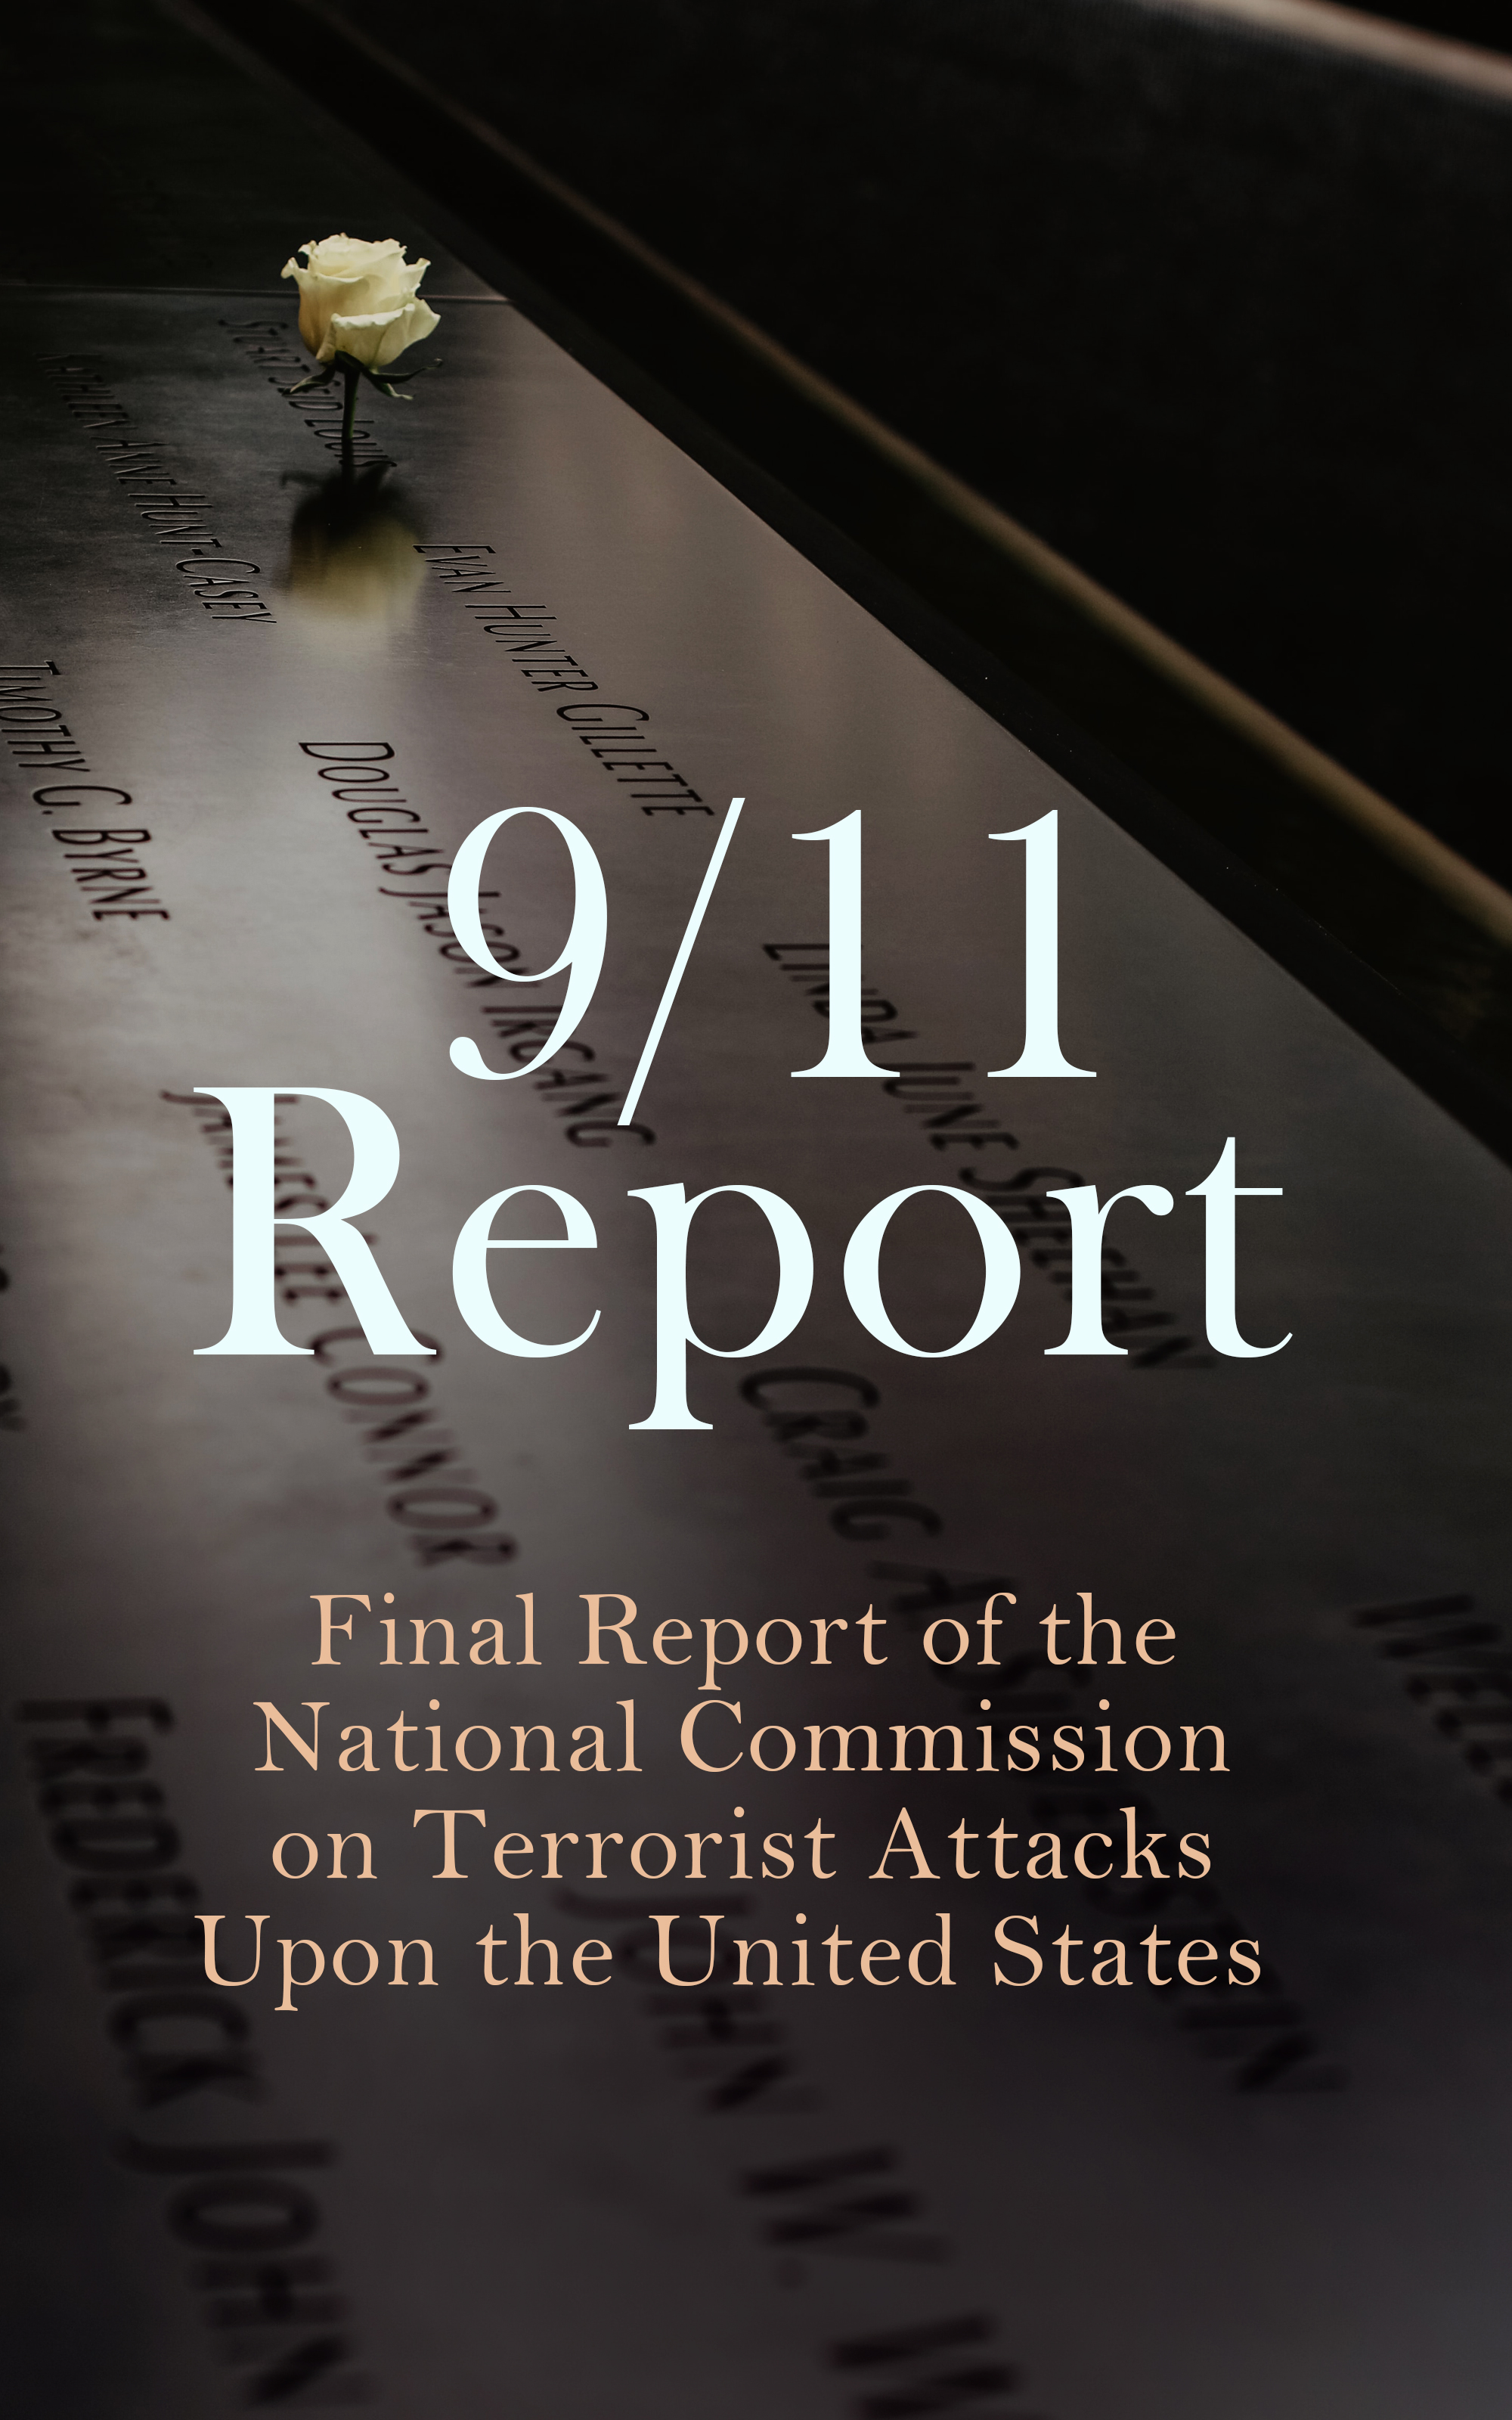 Thomas R. Eldridge 9/11 Report: Final Report of the National Commission on Terrorist Attacks Upon the United States marion dekalb smith annual report of the comptroller of the treasury of the state of maryland for the fiscal year ended september 30 1895 to the general assembly of maryland